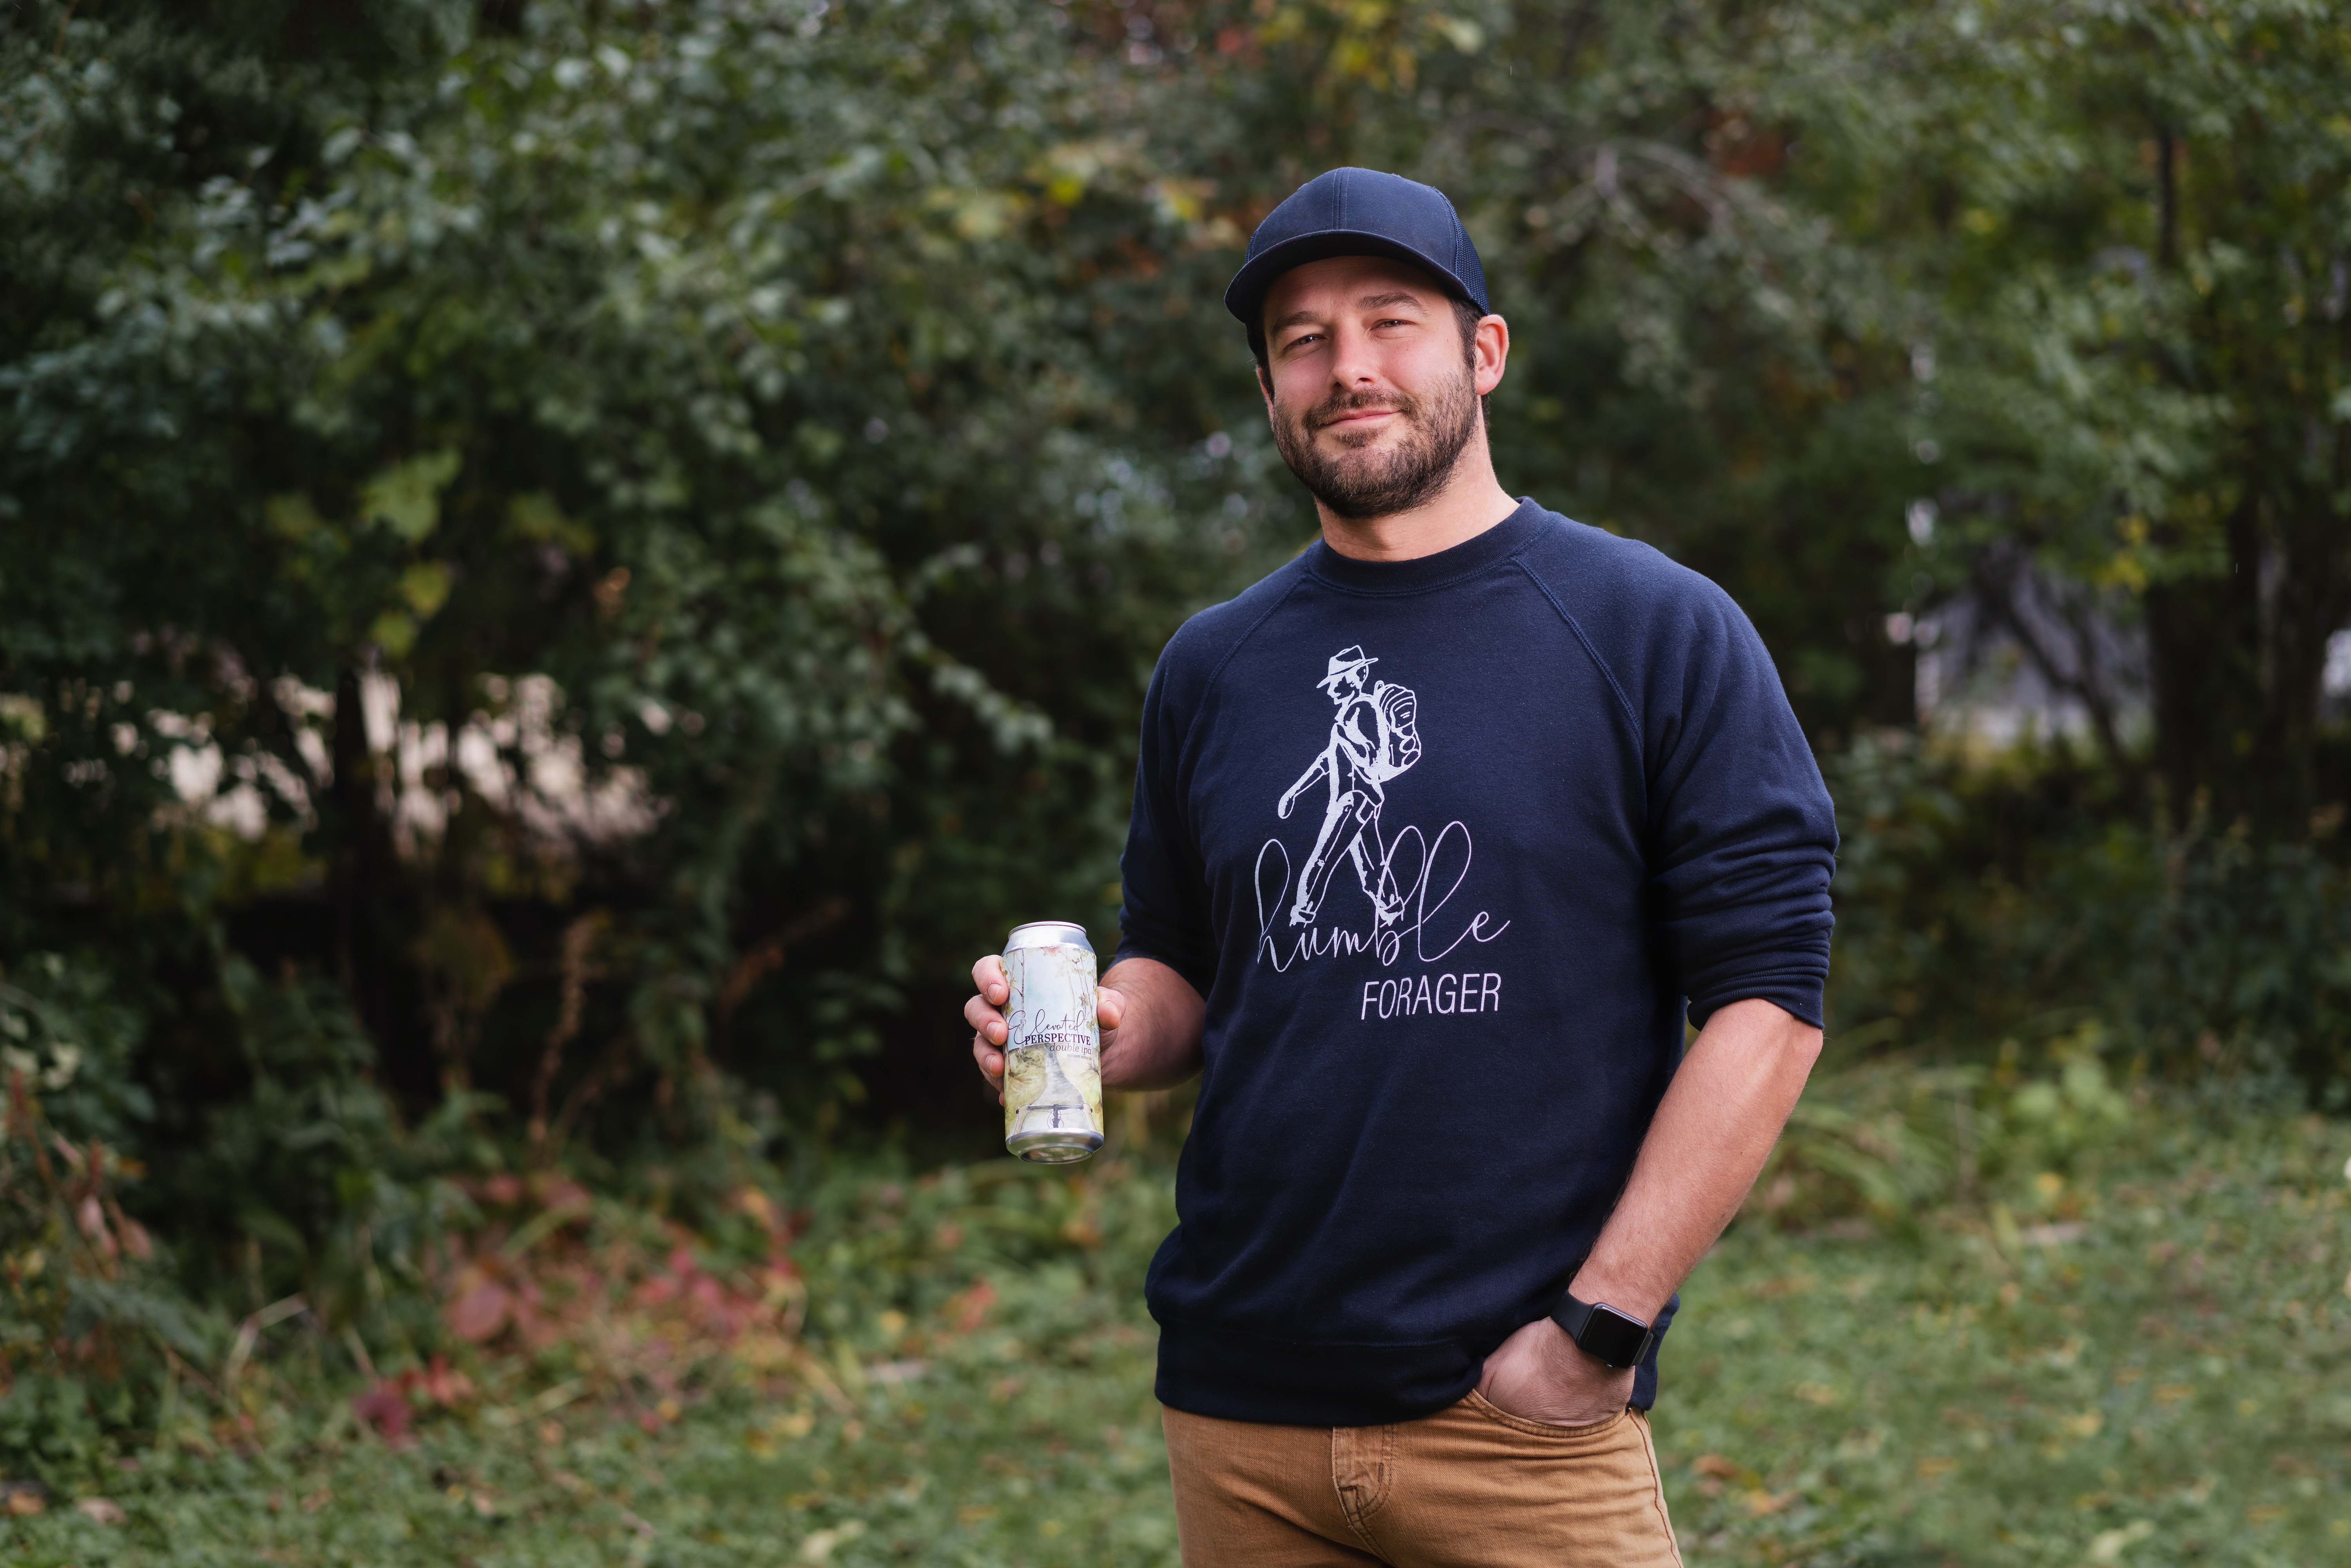 Austin Jevne, co-owner of Forager Brewery in Rochester, poses with a can of their new distribution beer brand, Humble Forager // Photo courtesy of Humble Forager Brewery